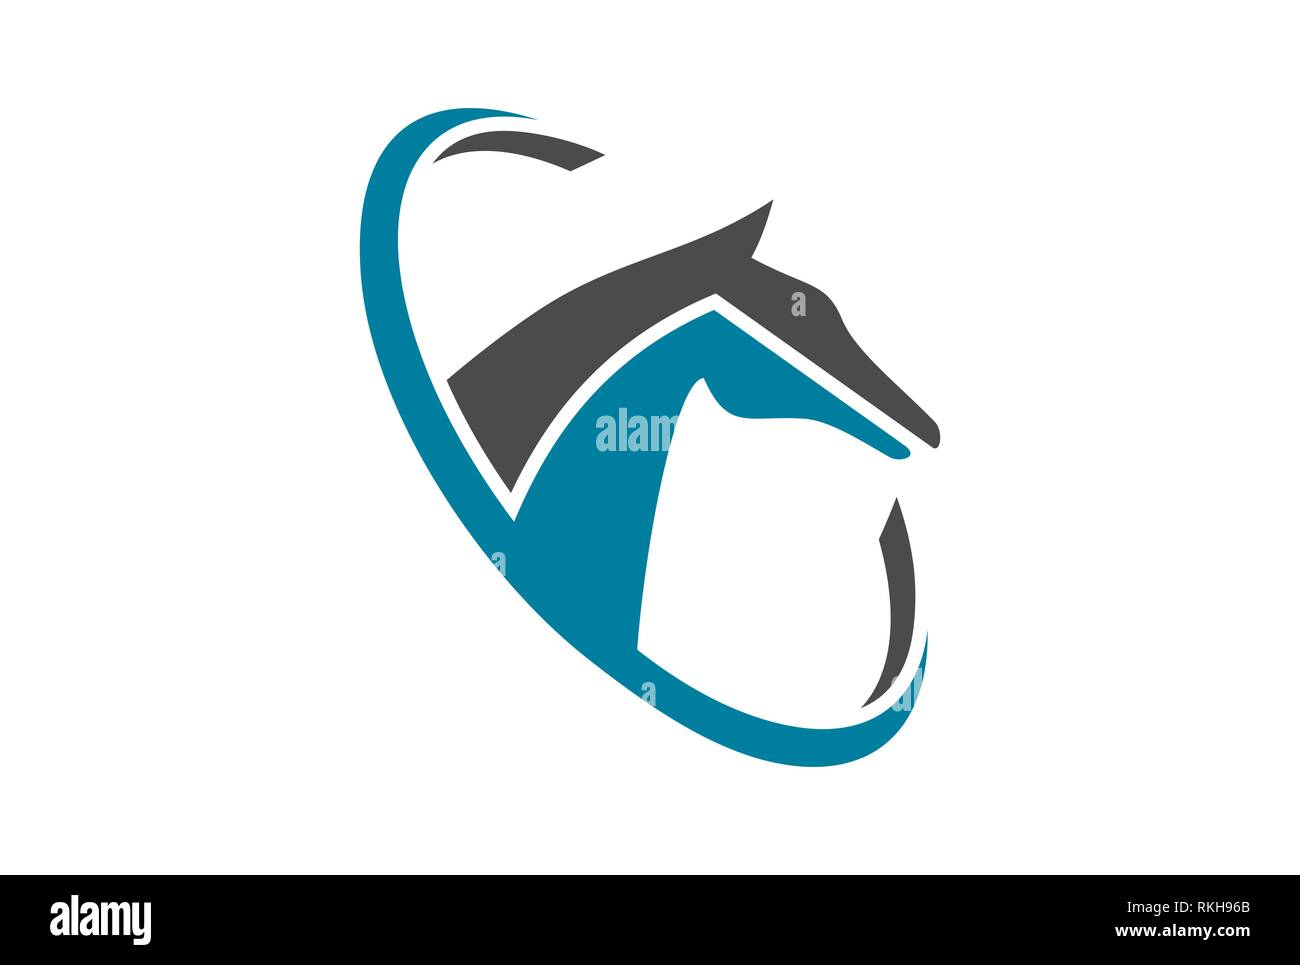 Abstract Horse Geometric Shape Symbol High Resolution Stock Photography And Images Alamy